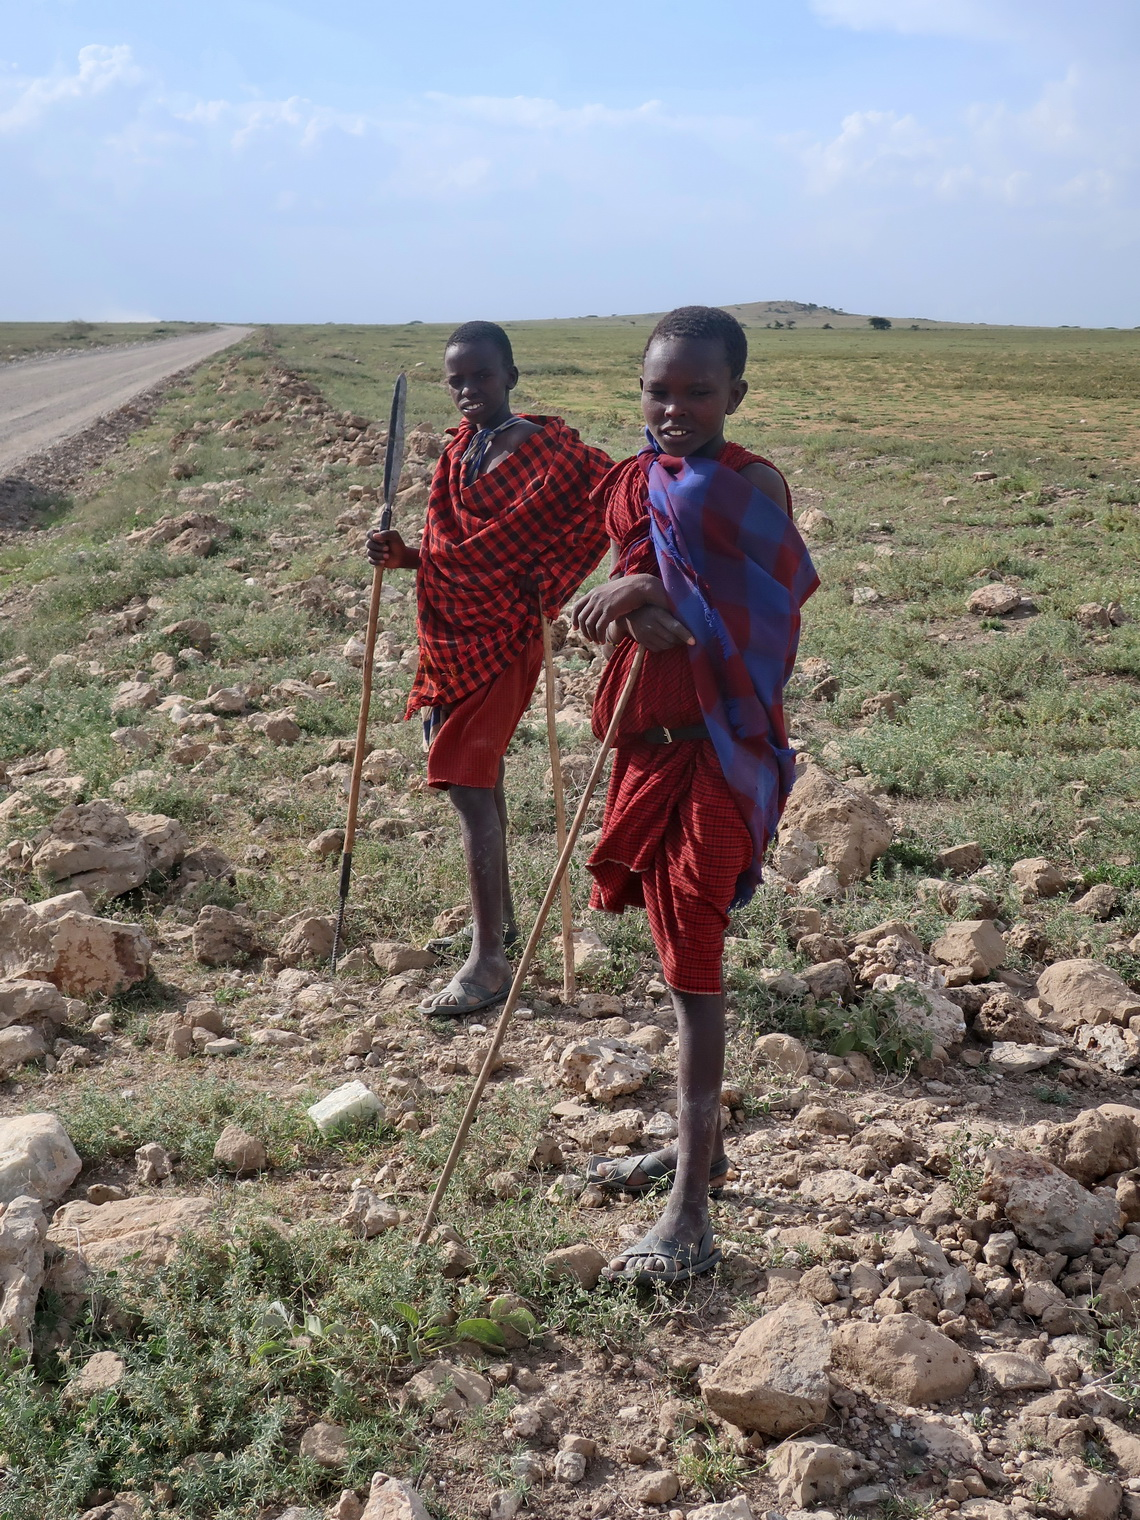 Maasai boys watching us